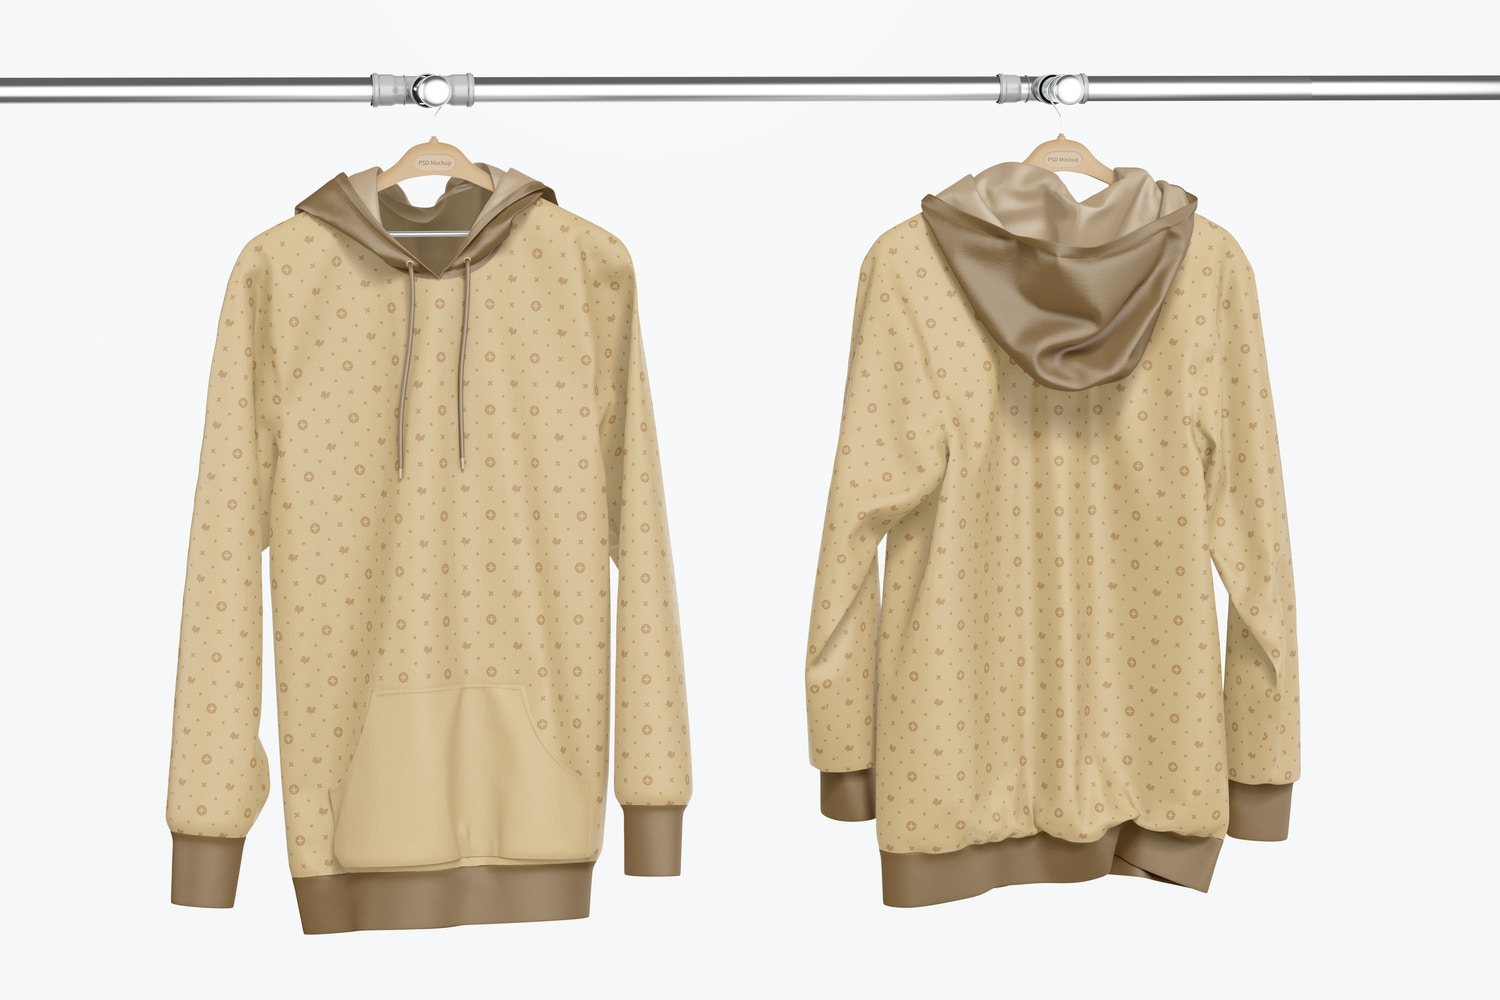 Hanging Hoodie Mockup, Front and Back